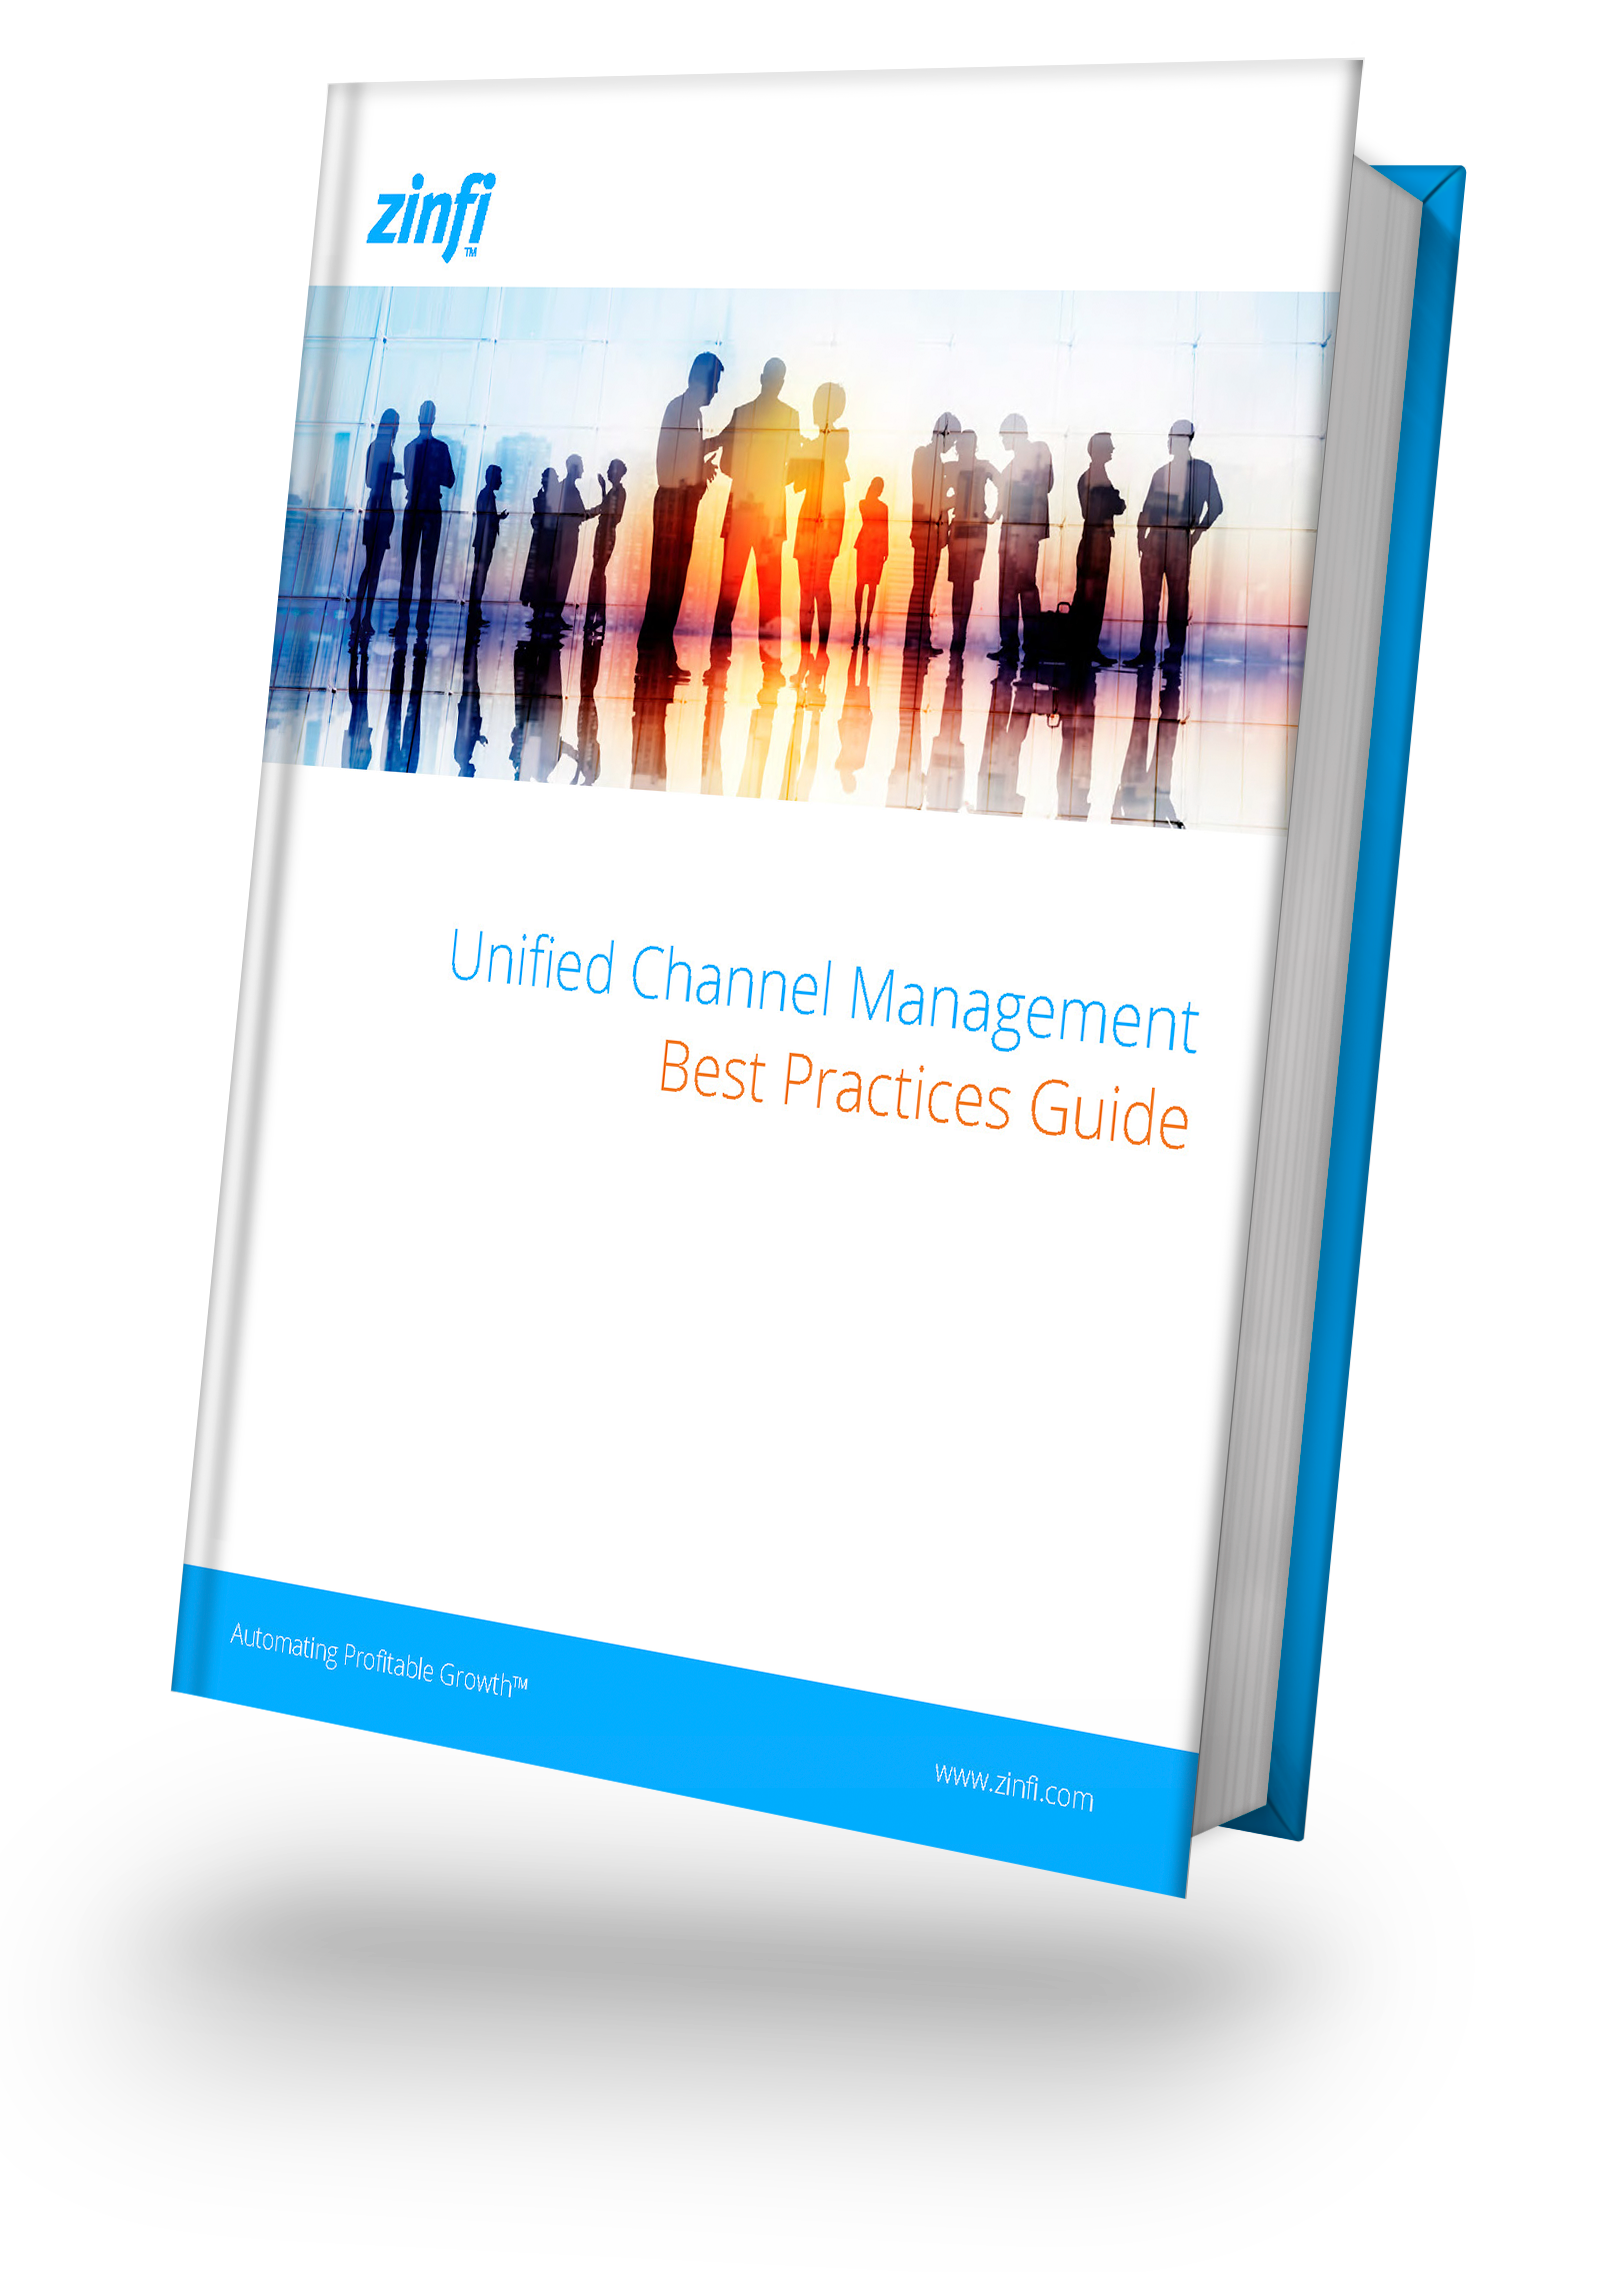 Unified Channel Management Best Practices